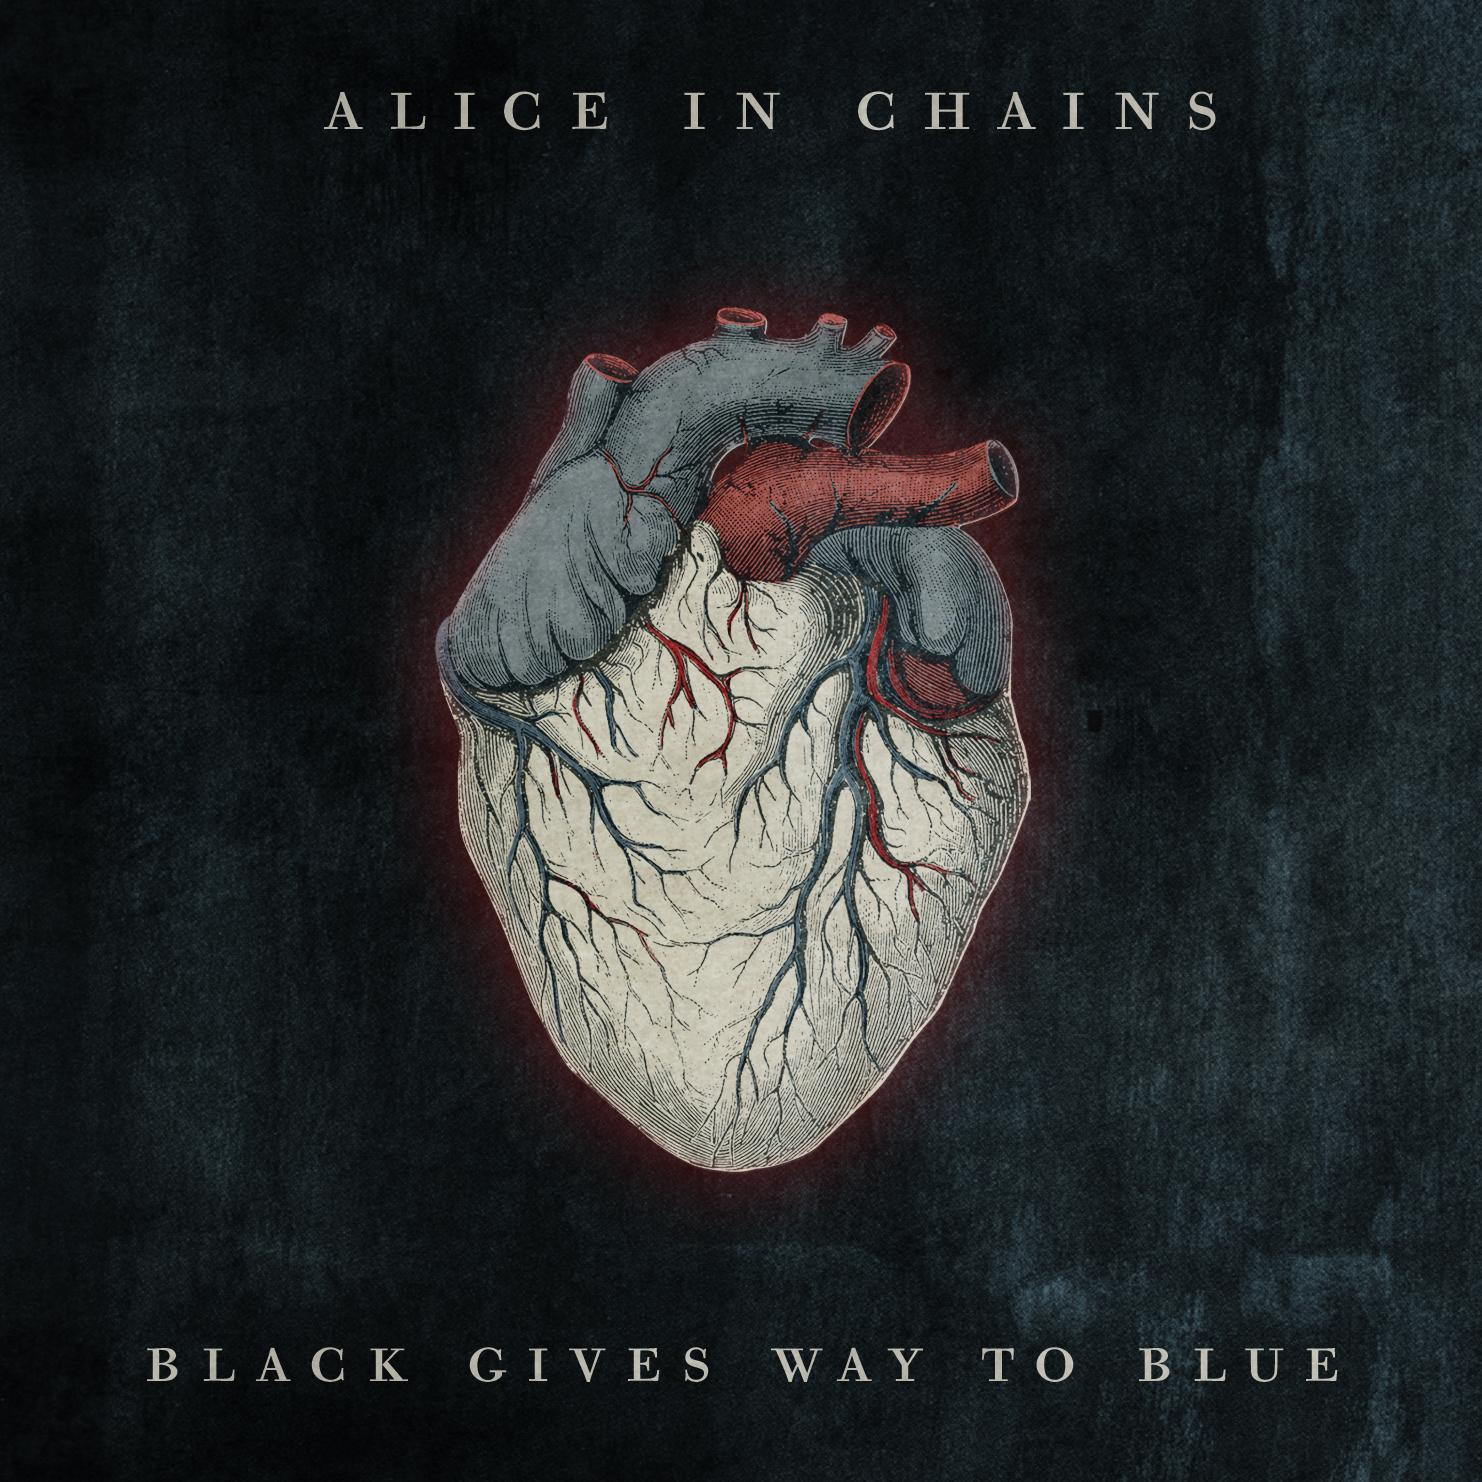 jaquettes3/Alice-In-Chains_Black-Gives-Way-To-Blue.jpg